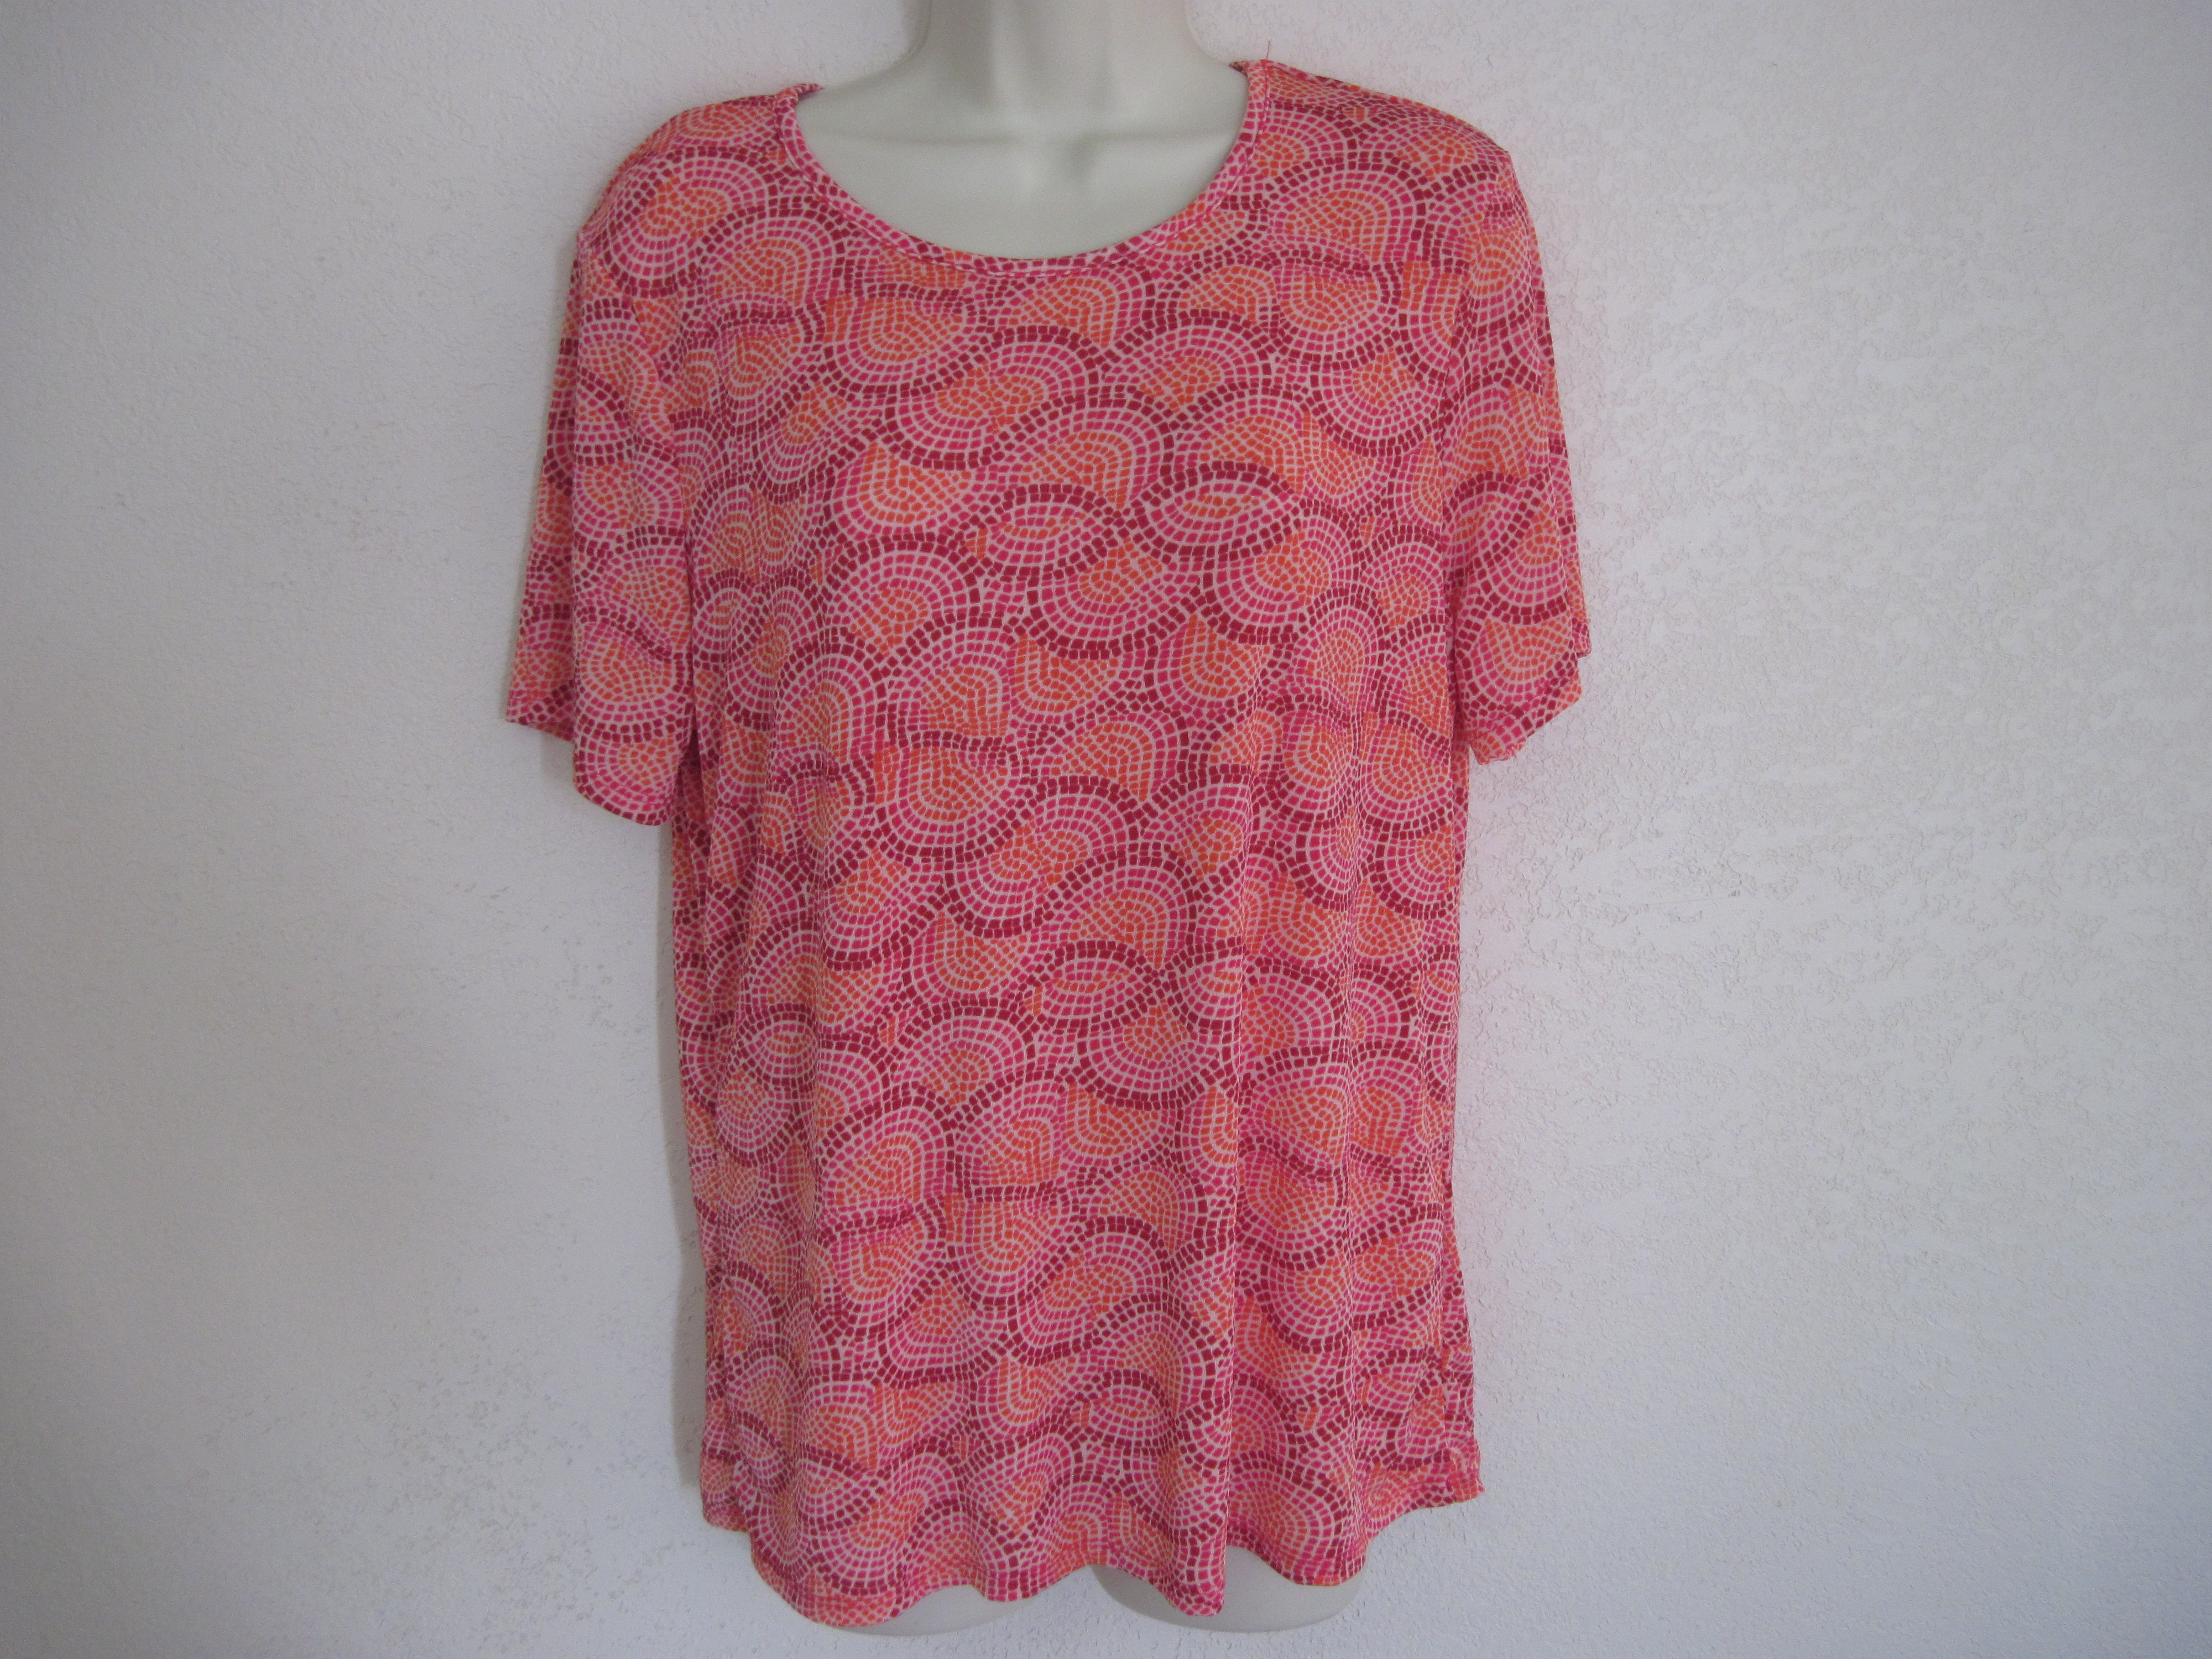 Jaclyn Smith Sz S Womens Shirt (Slinky Shells Orange,Pink